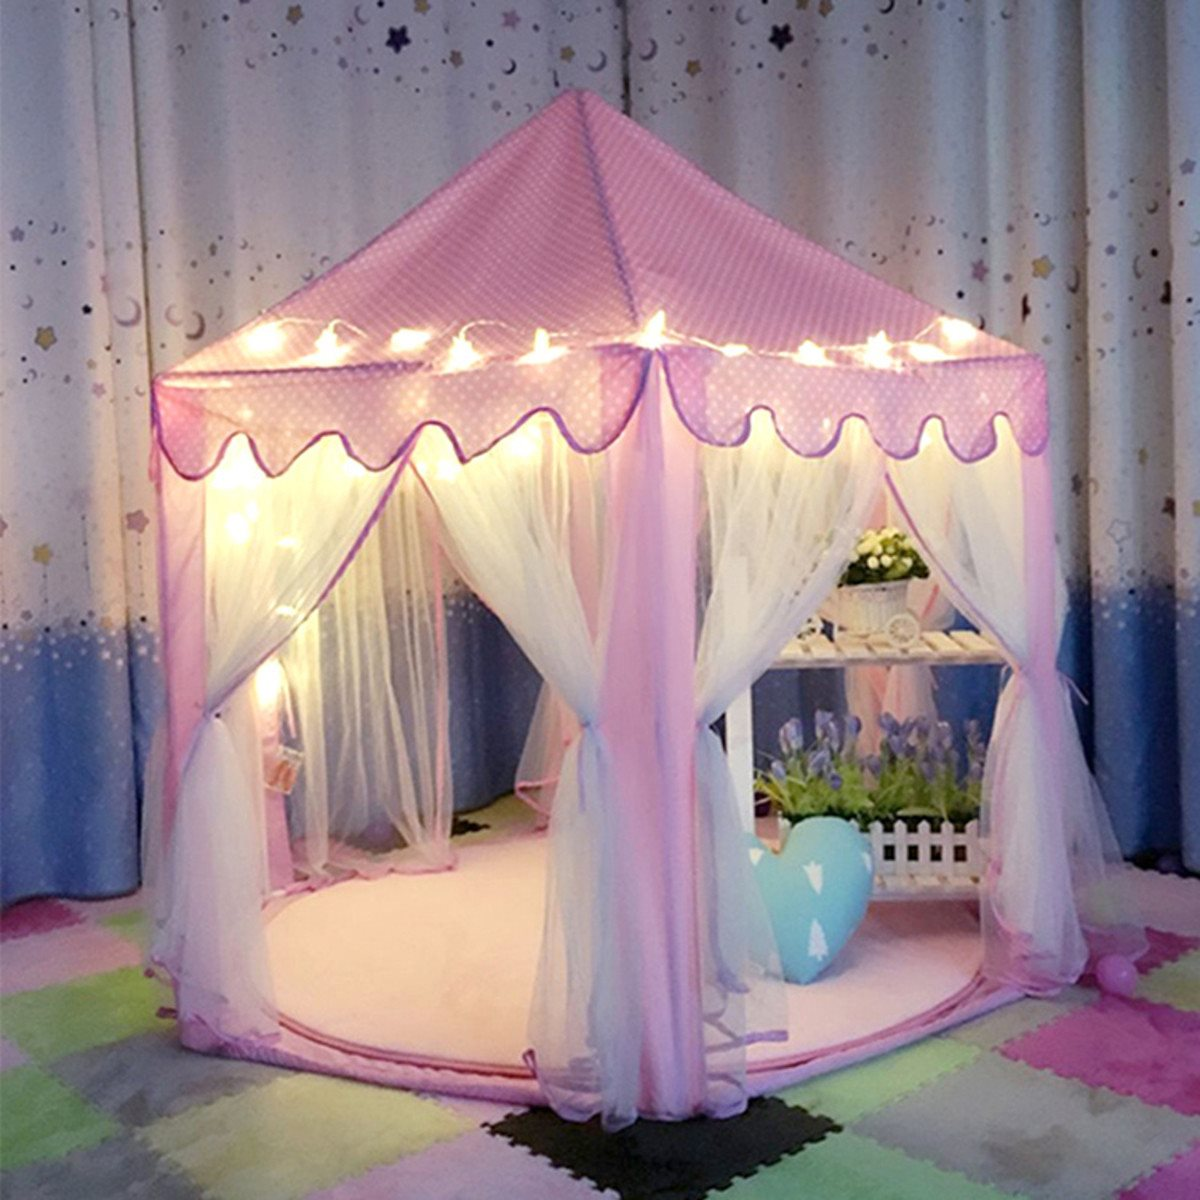 Lovely Girls Pink Portable Princess Castle Cute Playhouse Children Kids Play Tent Outdoor Toys Beach Tent For Children Kids : pink play tent - memphite.com